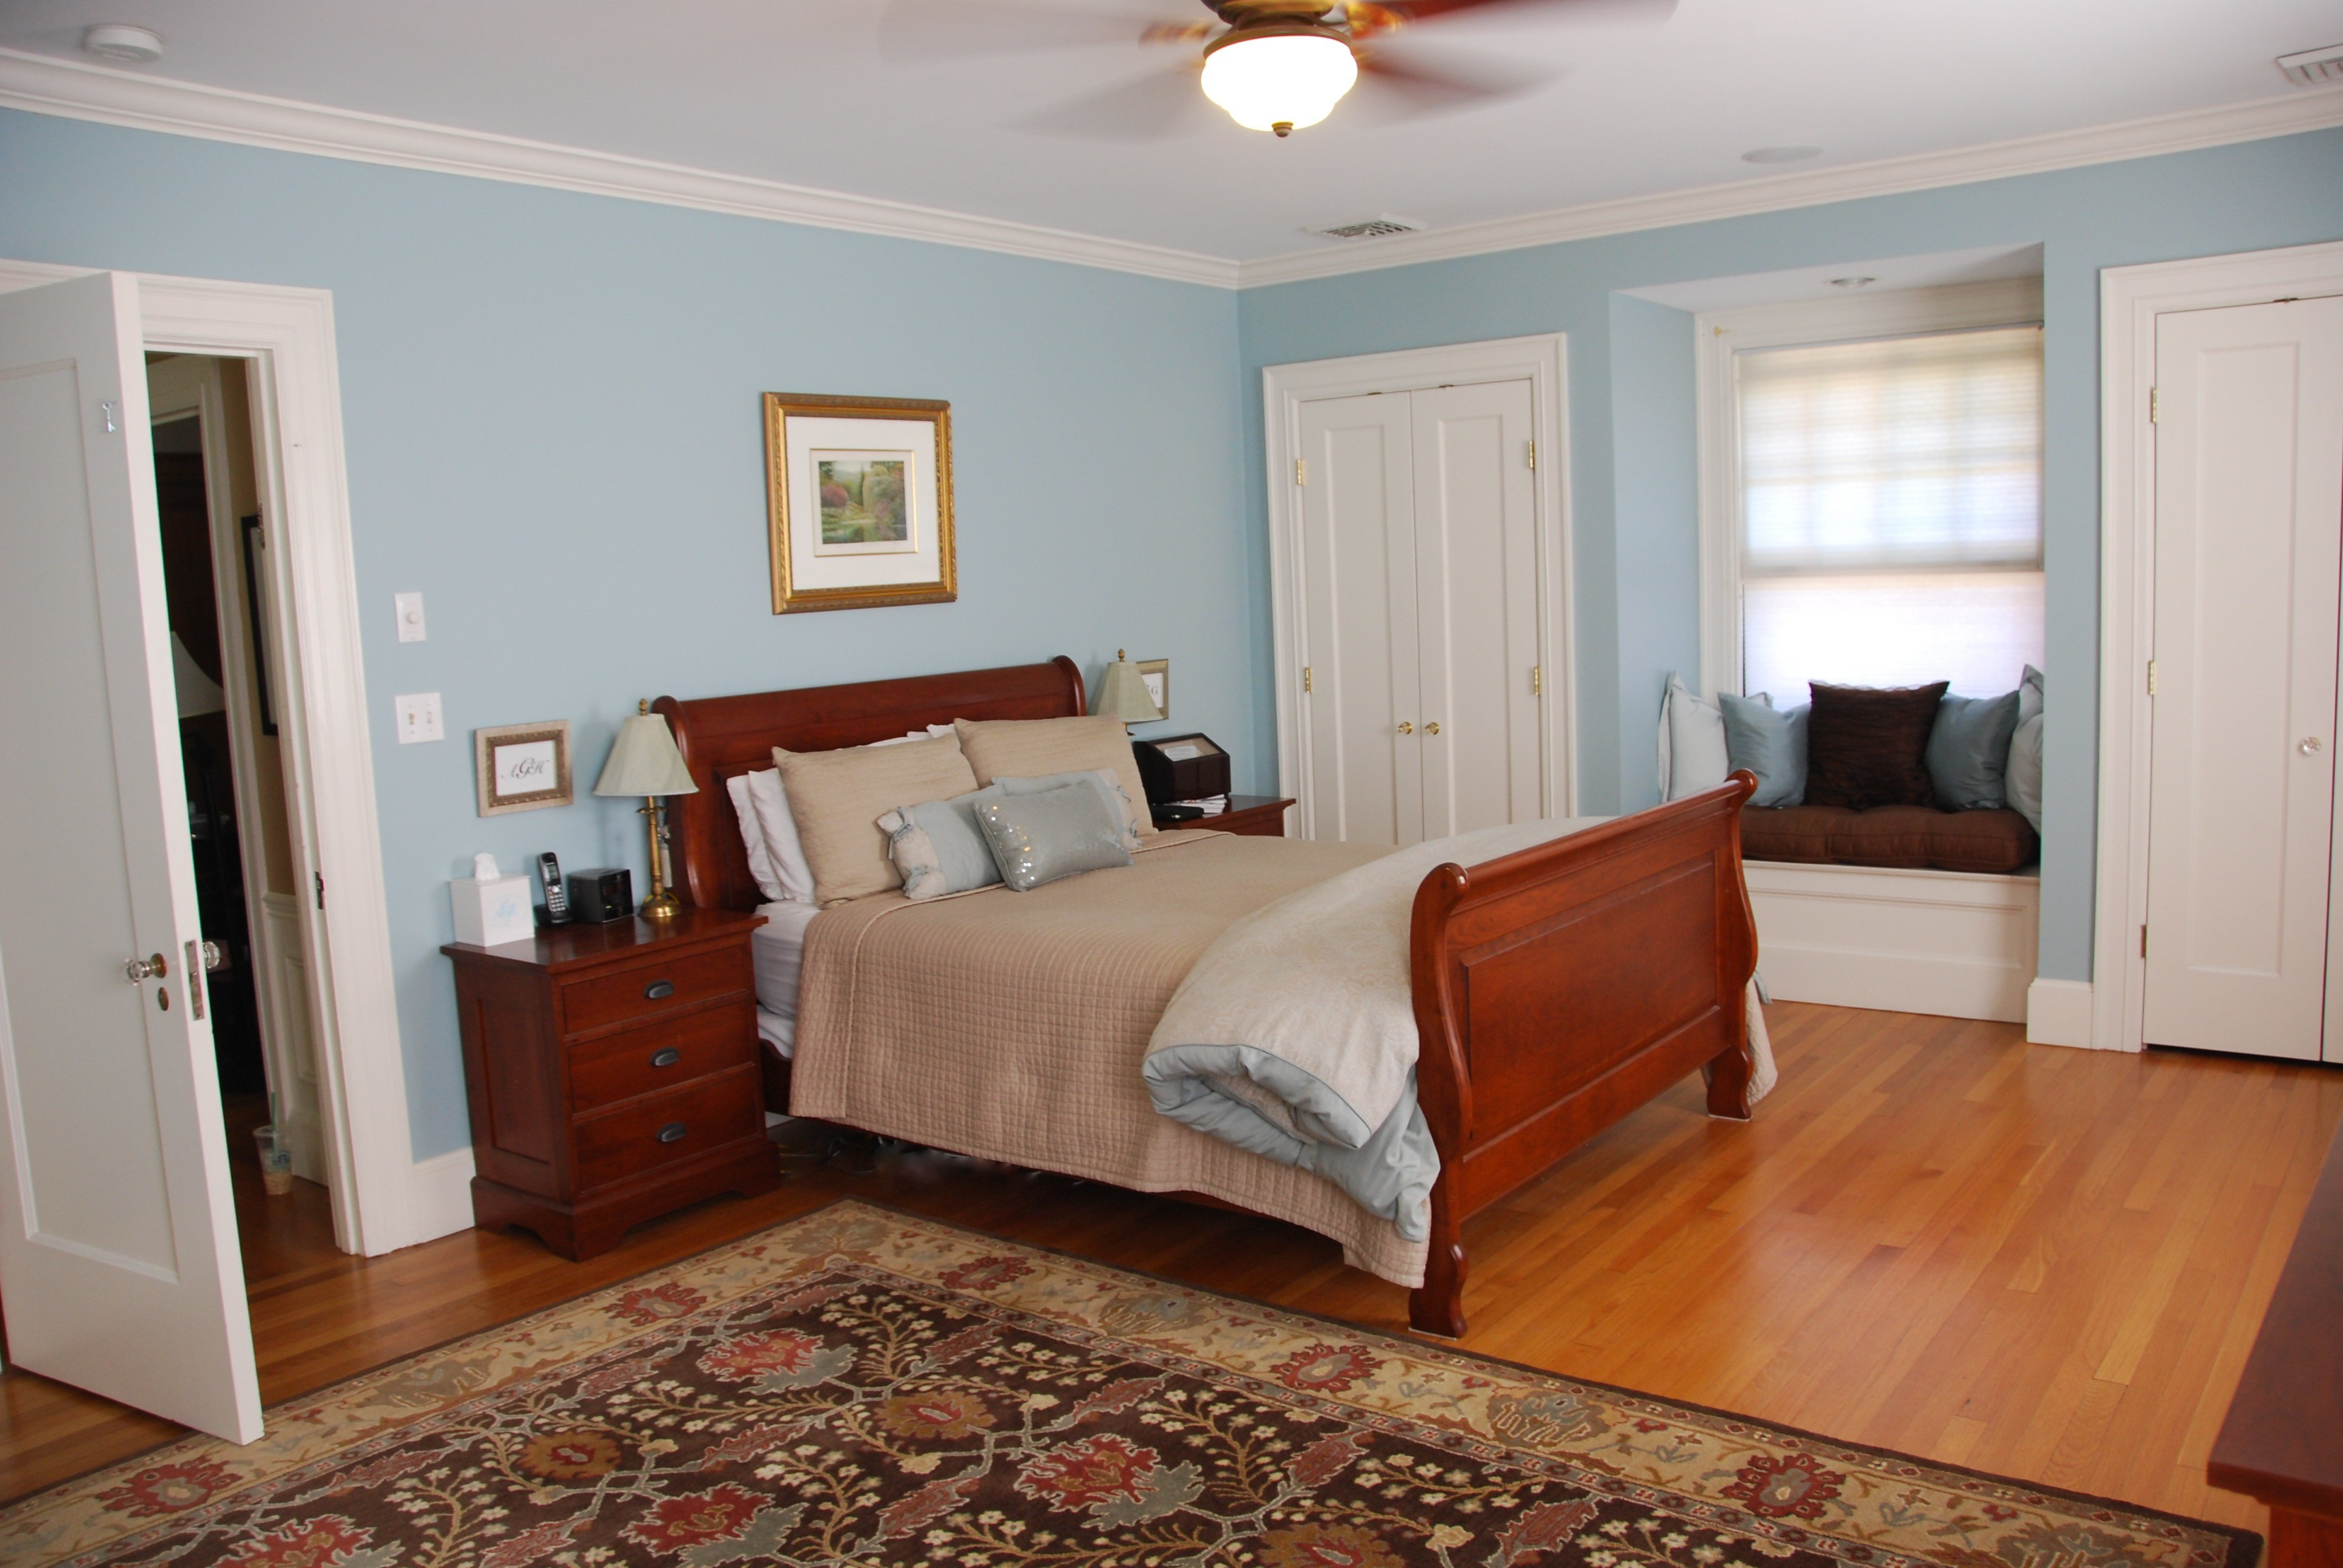 Best The Master Bedroom Tour Felt So Cute With Pictures